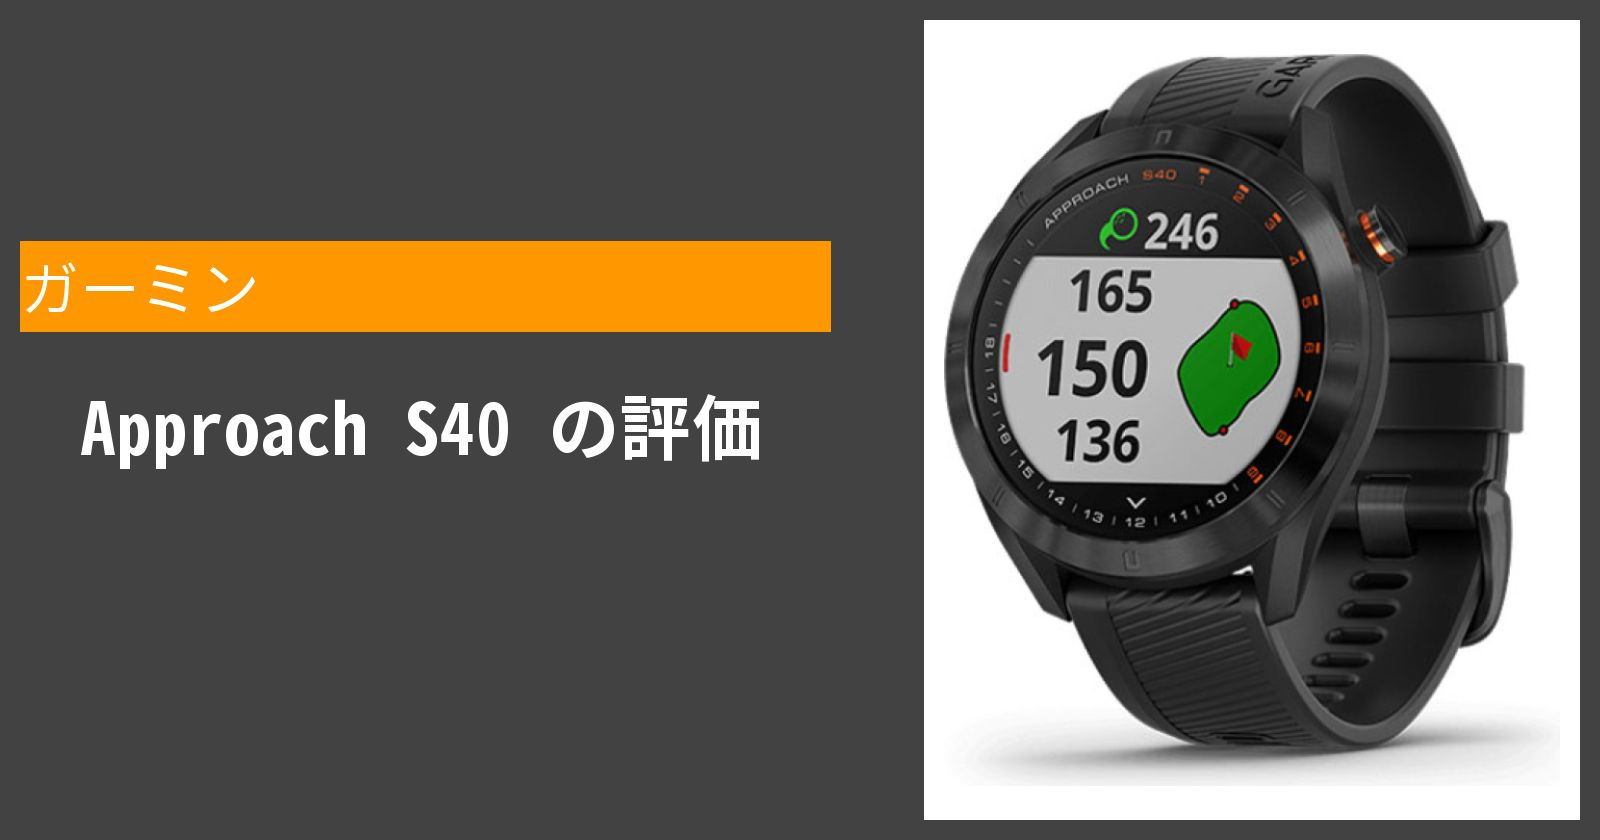 Approach S40を徹底評価